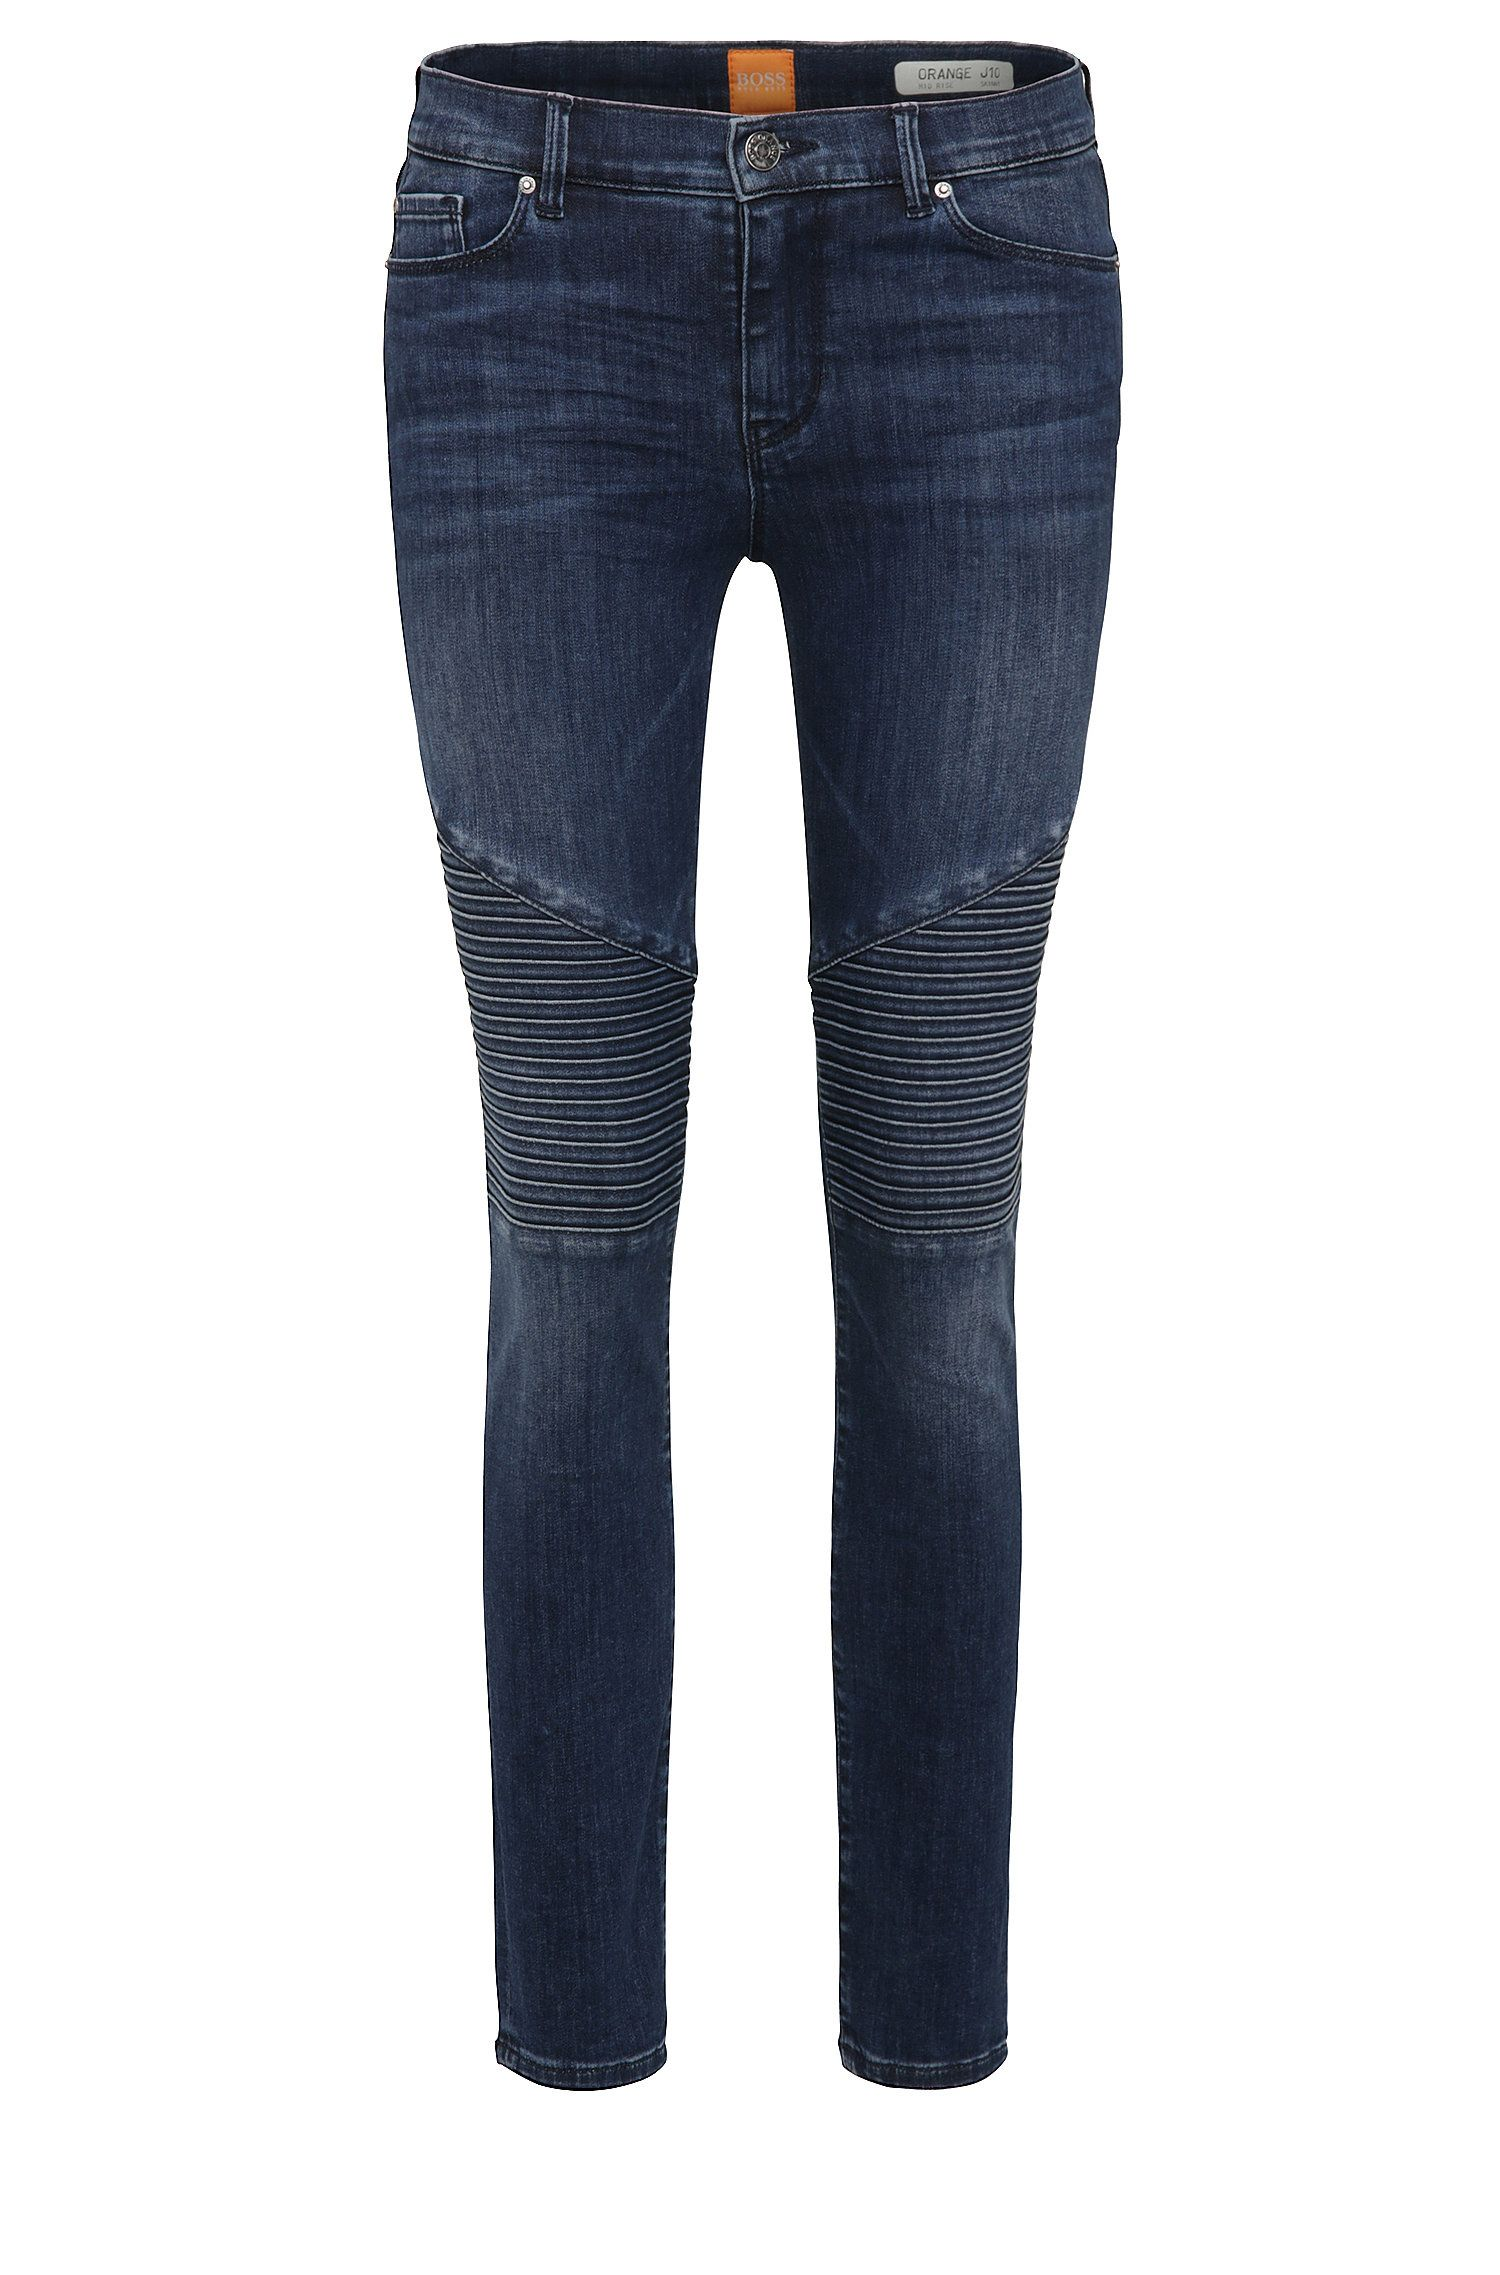 Gecroppte Skinny-Fit Jeans aus elastischem Baumwoll-Mix: ´Orange J10 Helena`